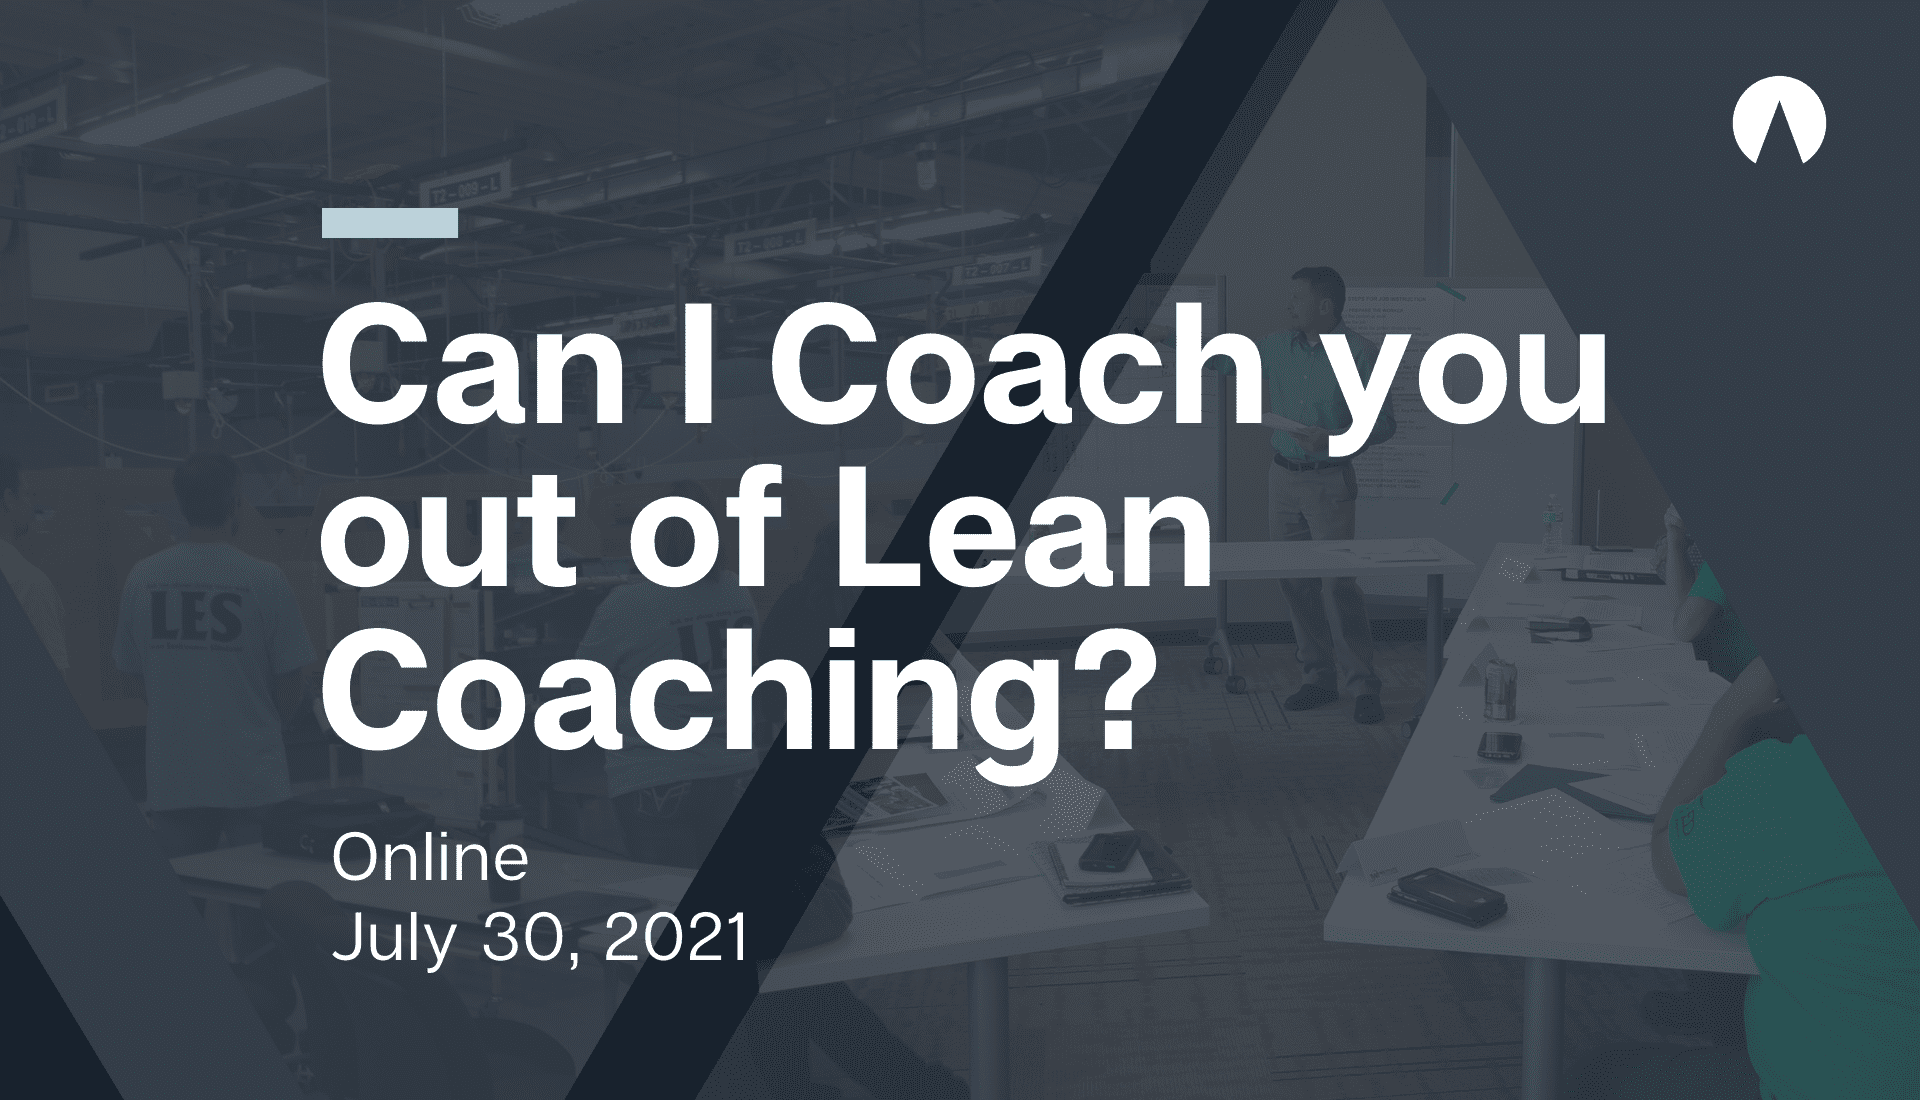 Can I Coach You Out of Lean Coaching?